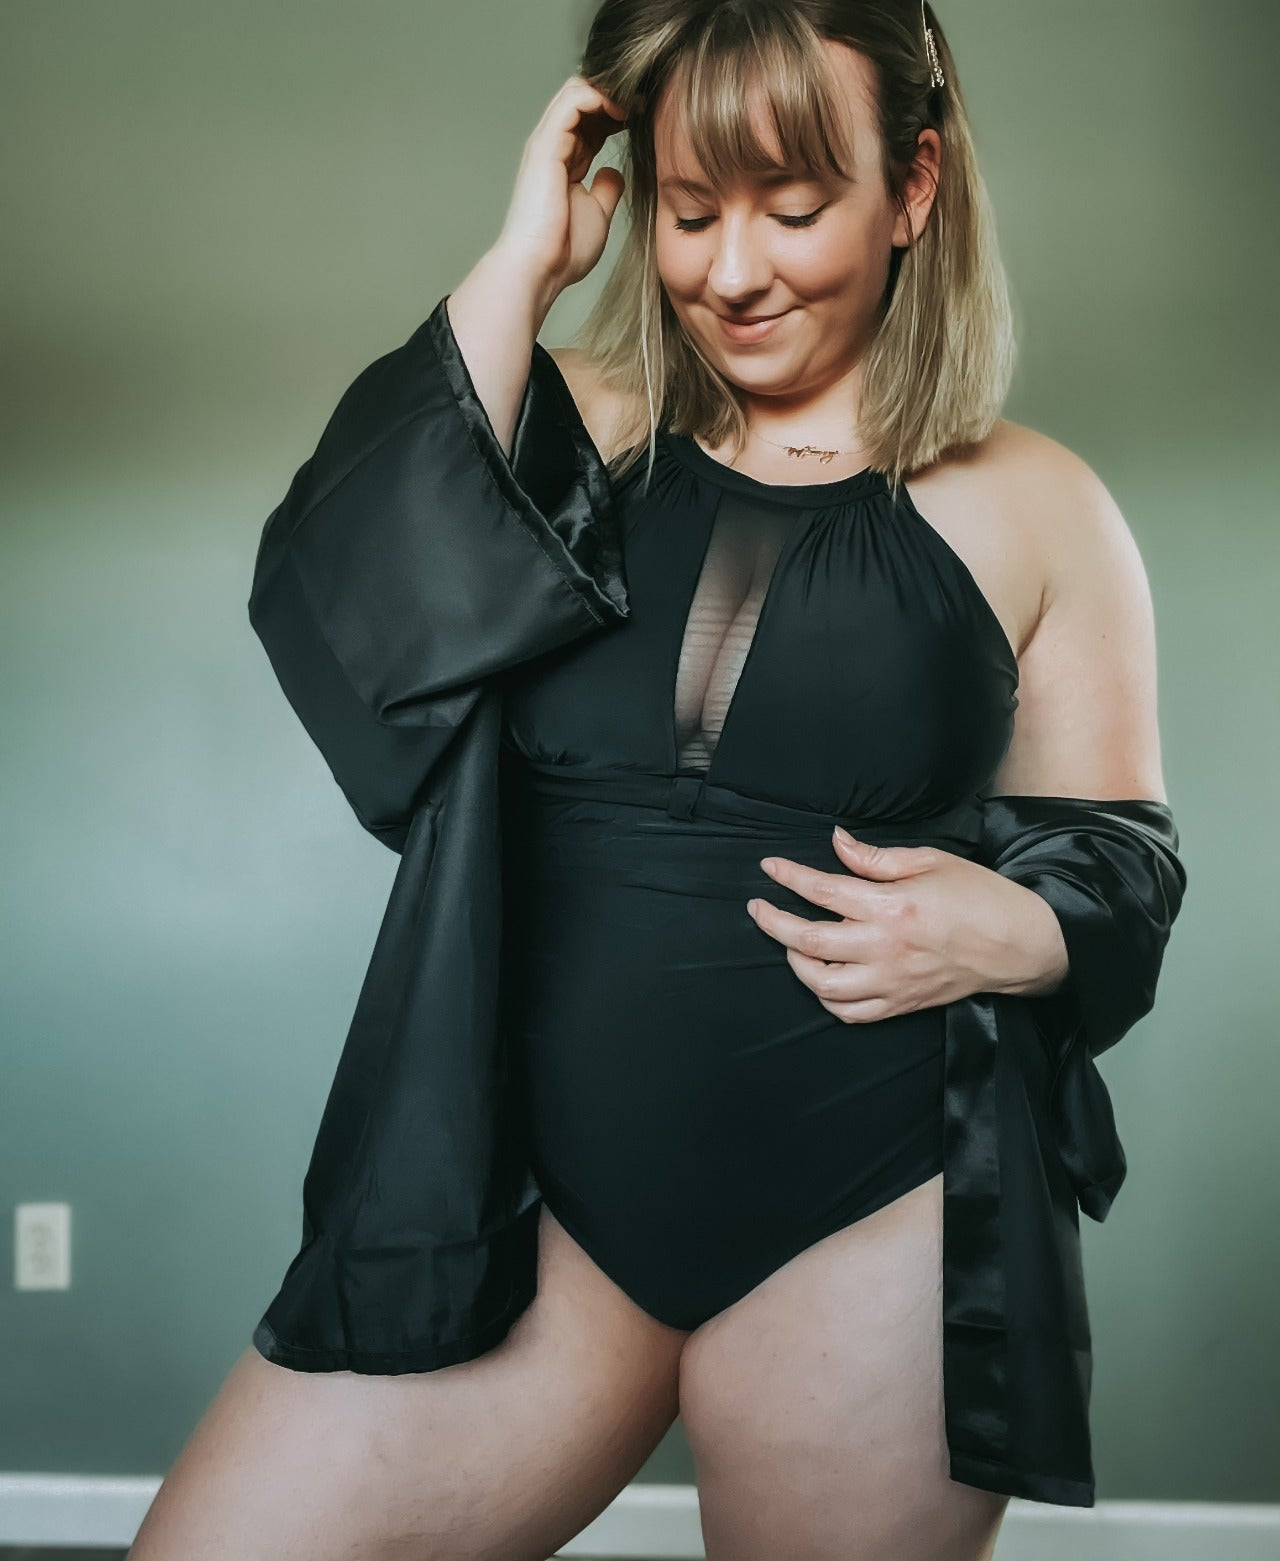 A reviewer in the swimsuit in black